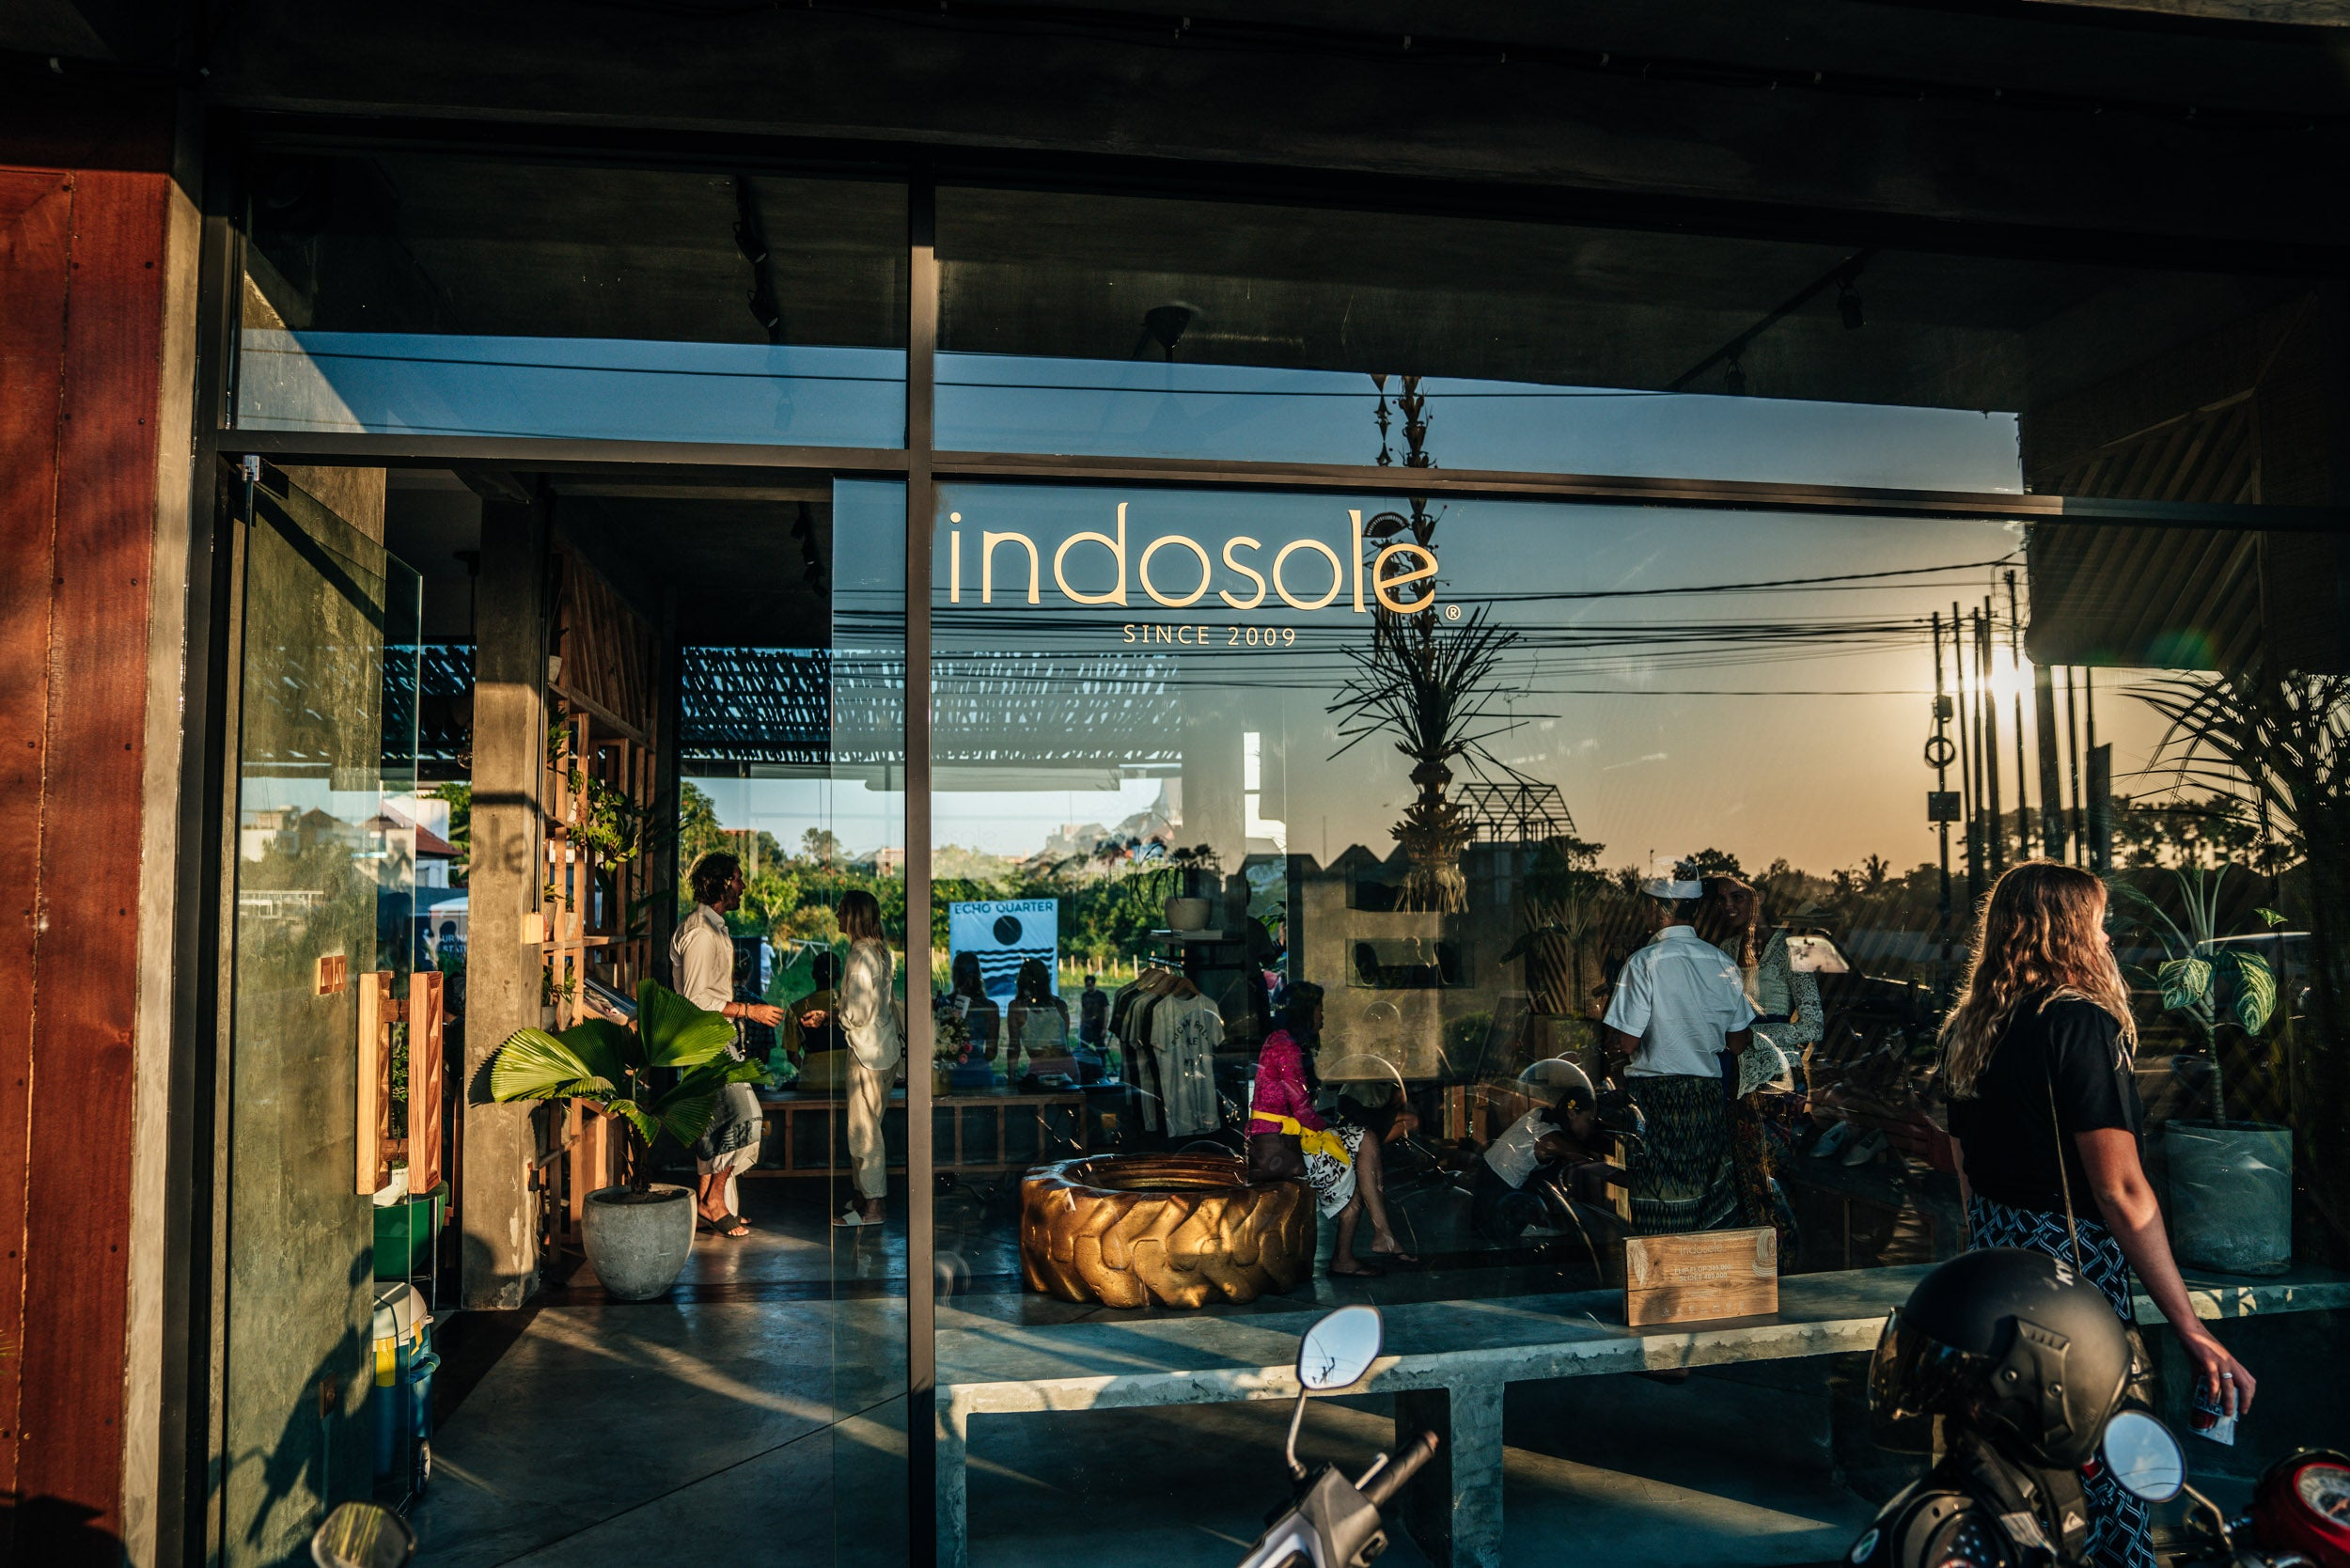 Storefront of Indosole's Canggu, Bali location in Indonesia